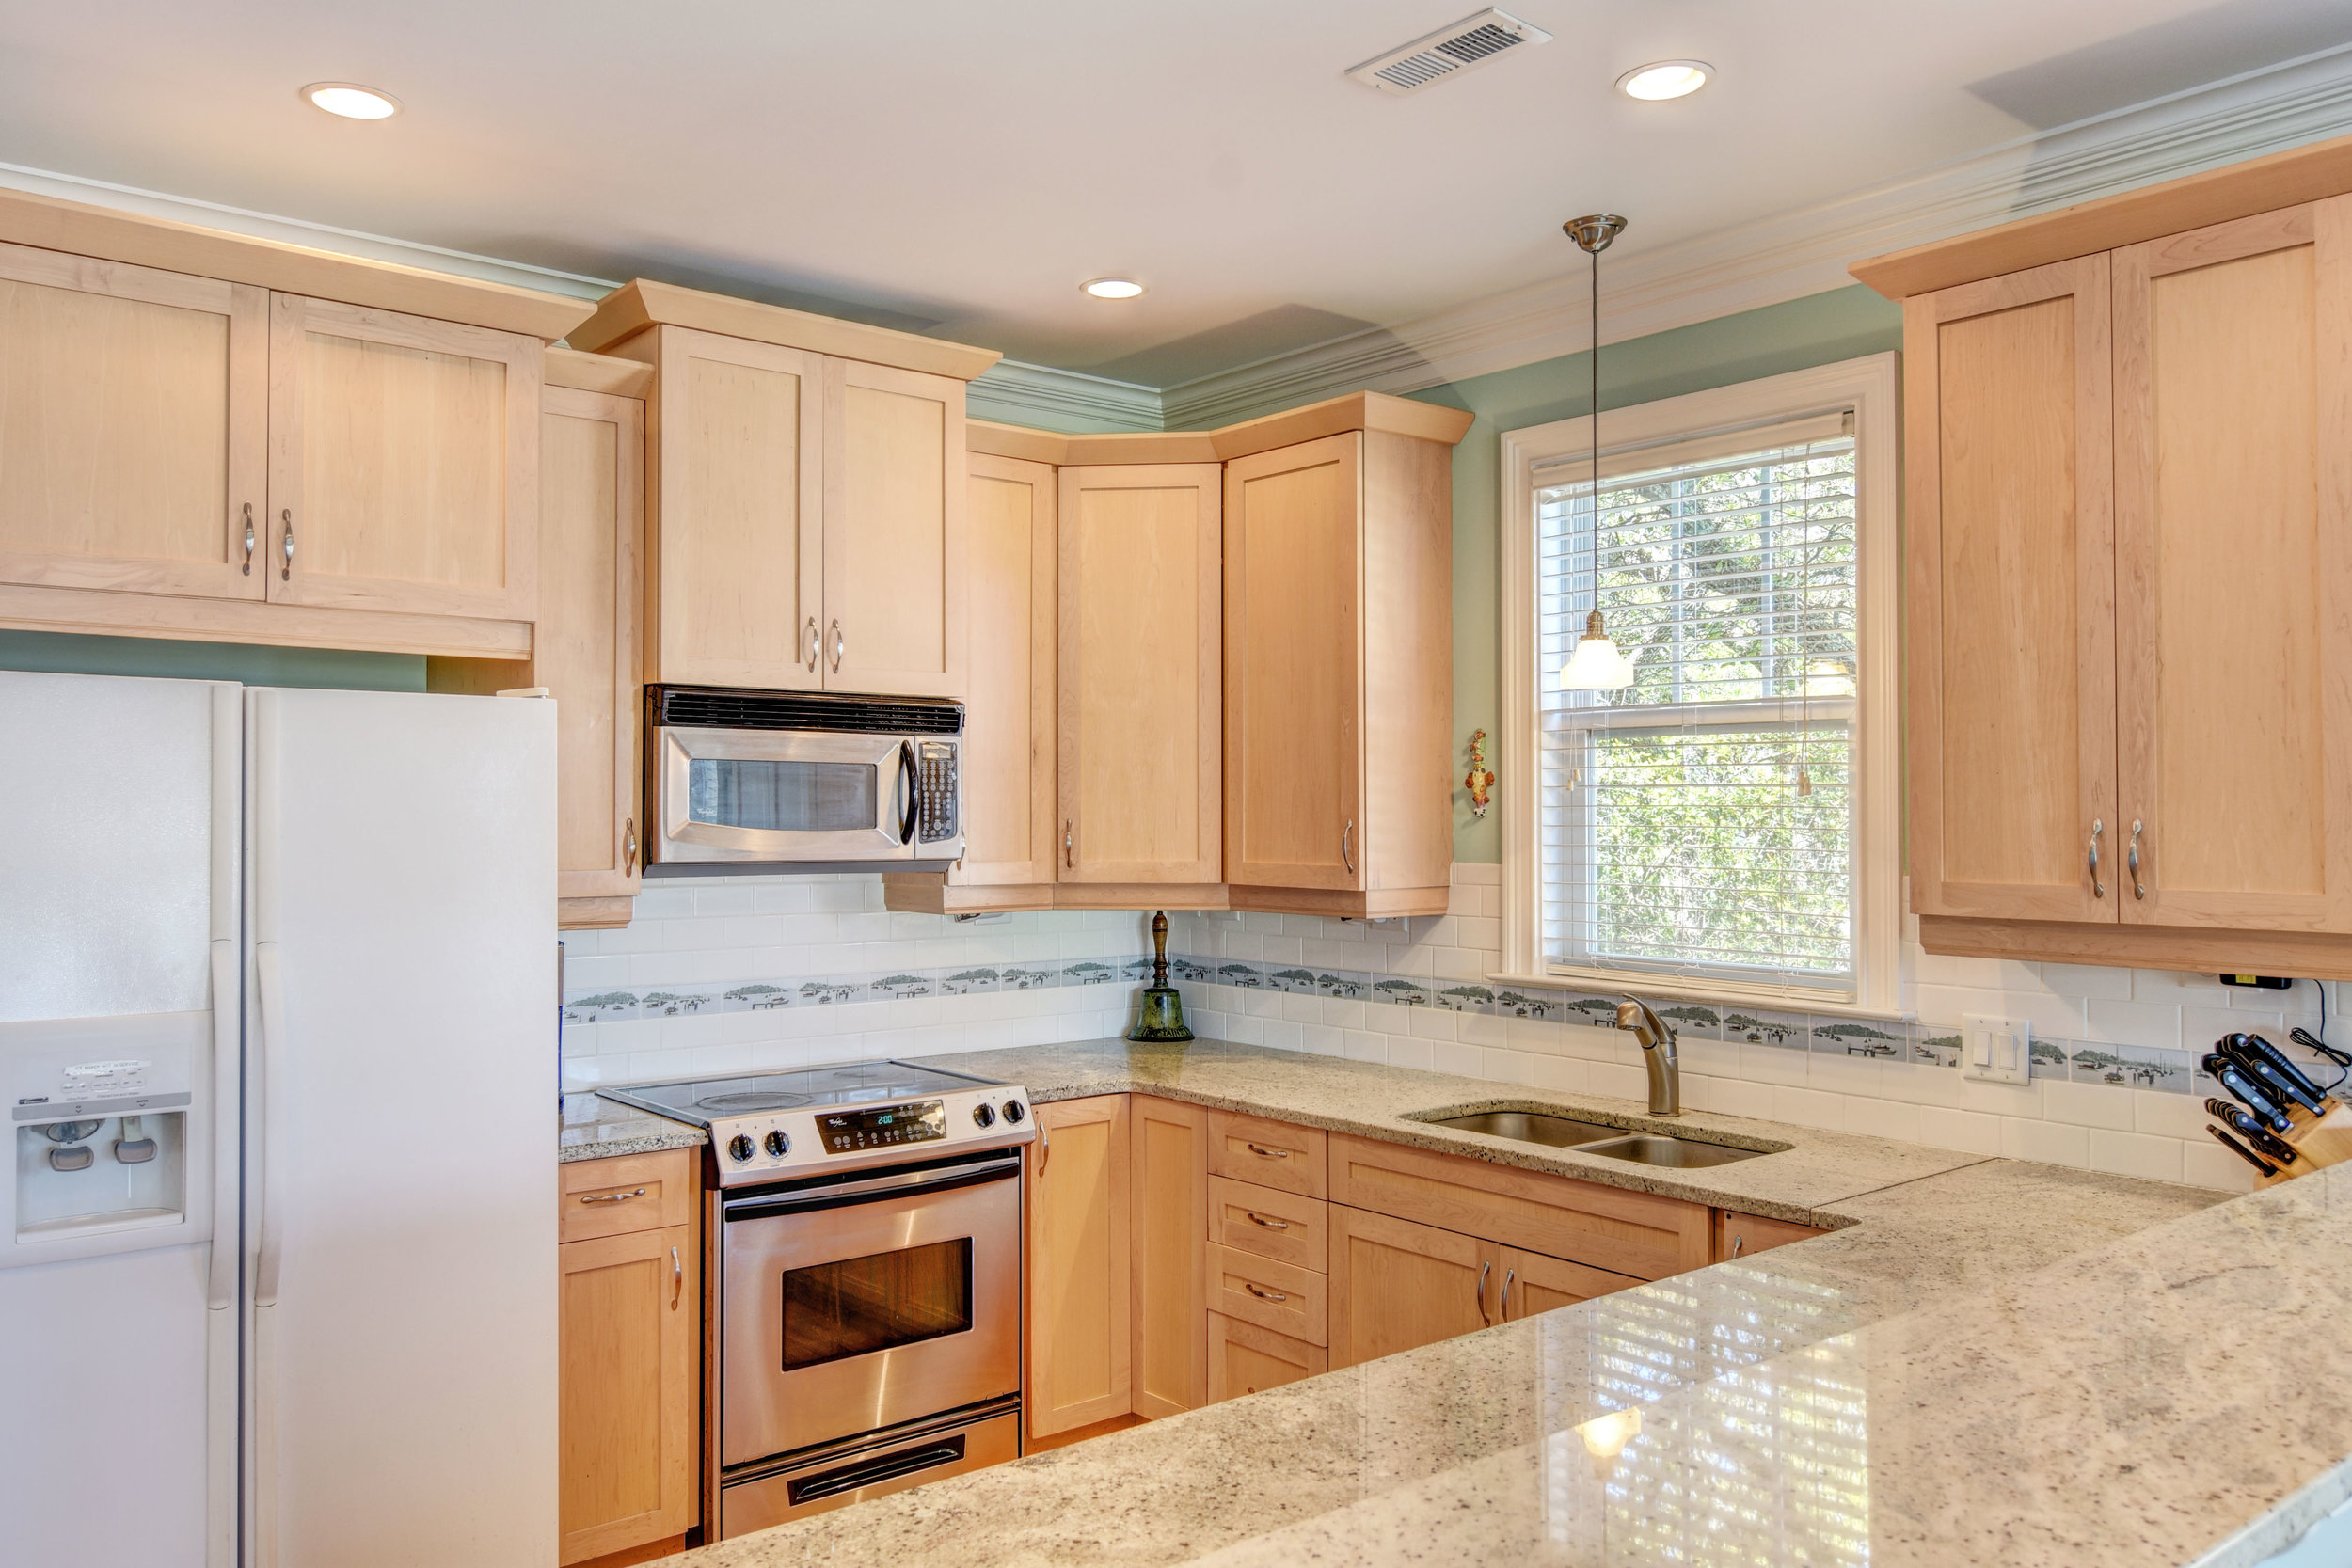 1514 Bowfin Lane Unit 2-print-009-28-Kitchen view 1-4200x2801-300dpi.jpg